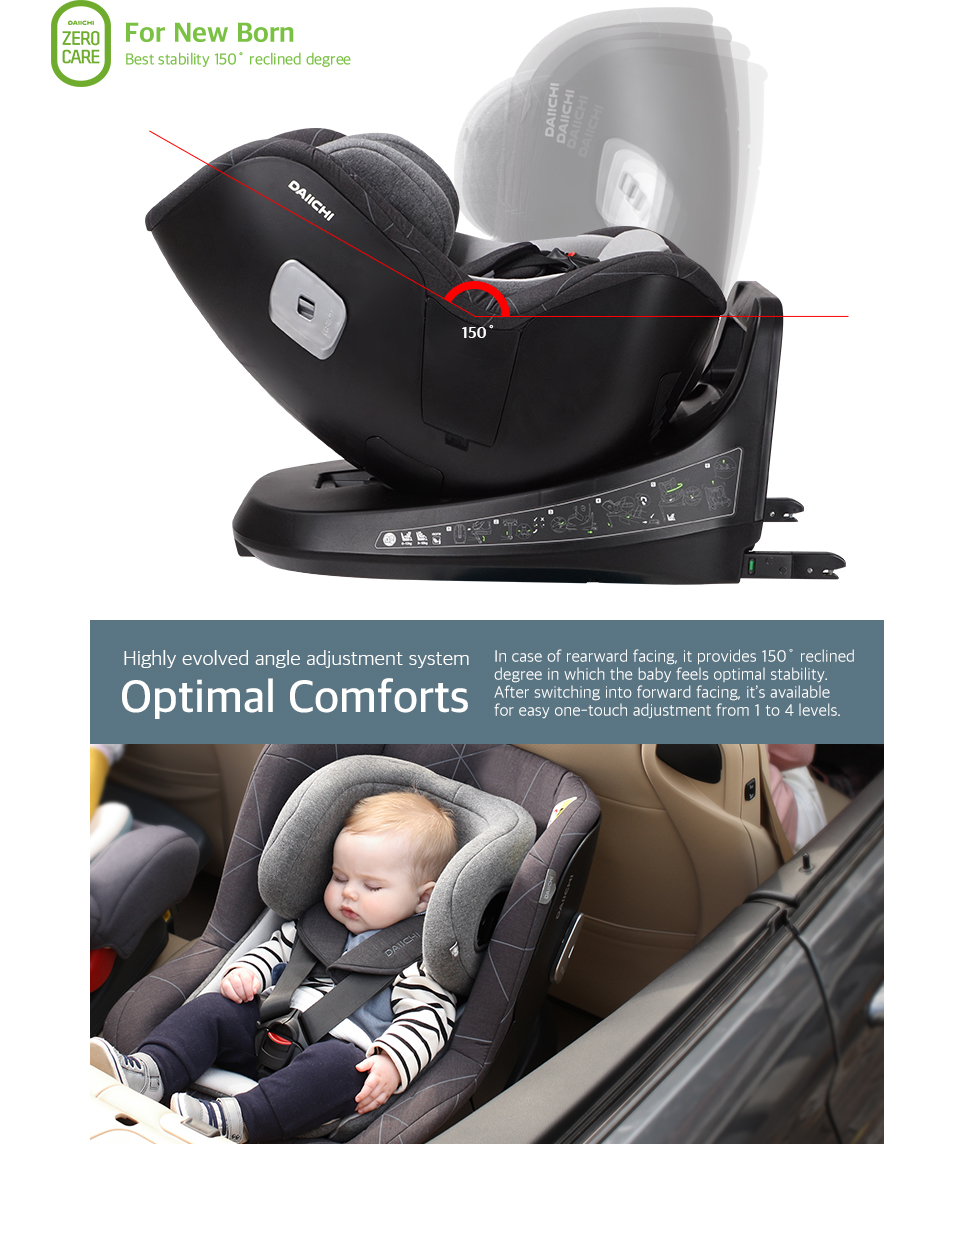 In case of rearward facing, it provides 150o reclined degree in which the baby feels optimal stability. After switching into forward facing, it's available for easy one-touch adjustment from 1 to 4 levels.